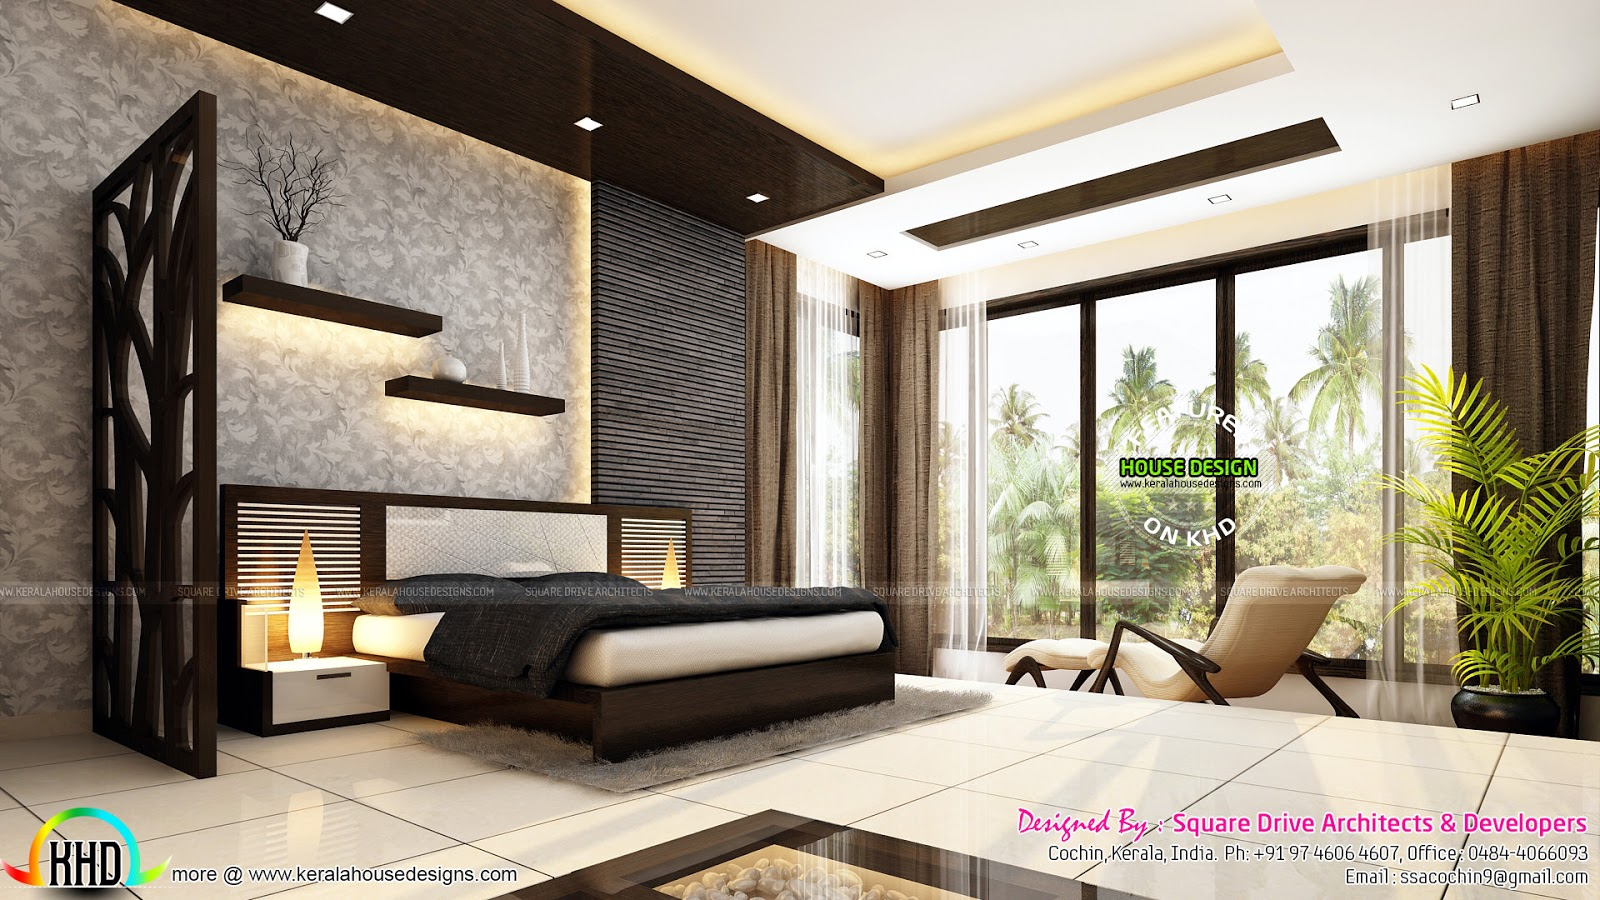 Very beautiful modern interior designs kerala home for Kerala home interior